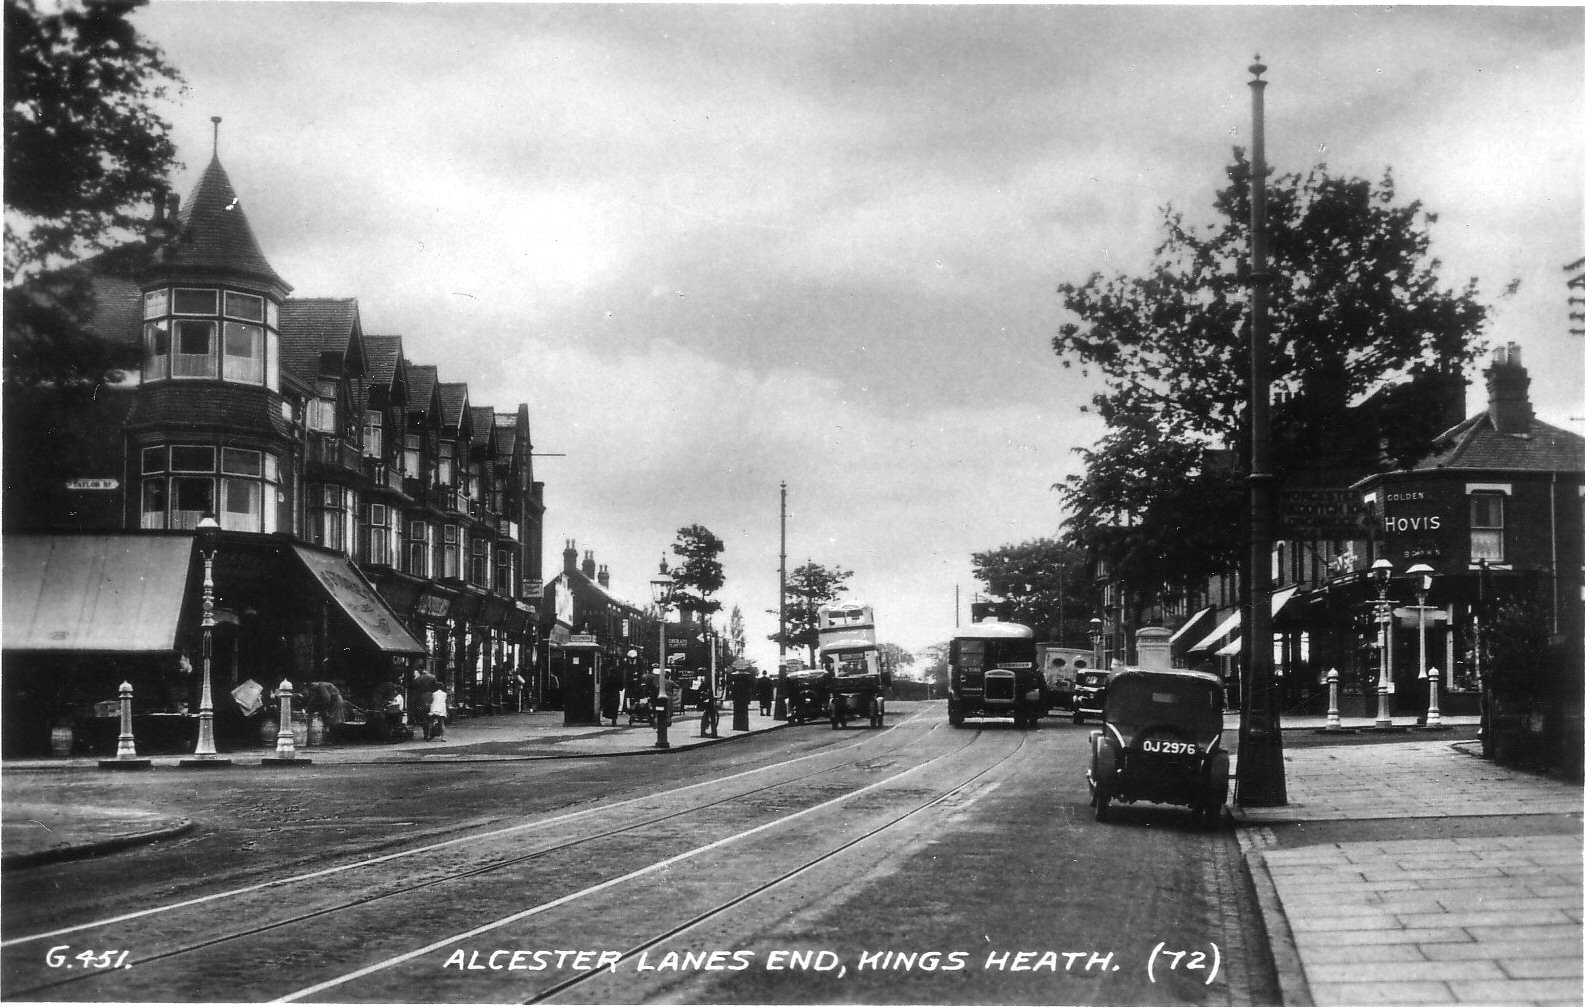 Alcester Lane's End